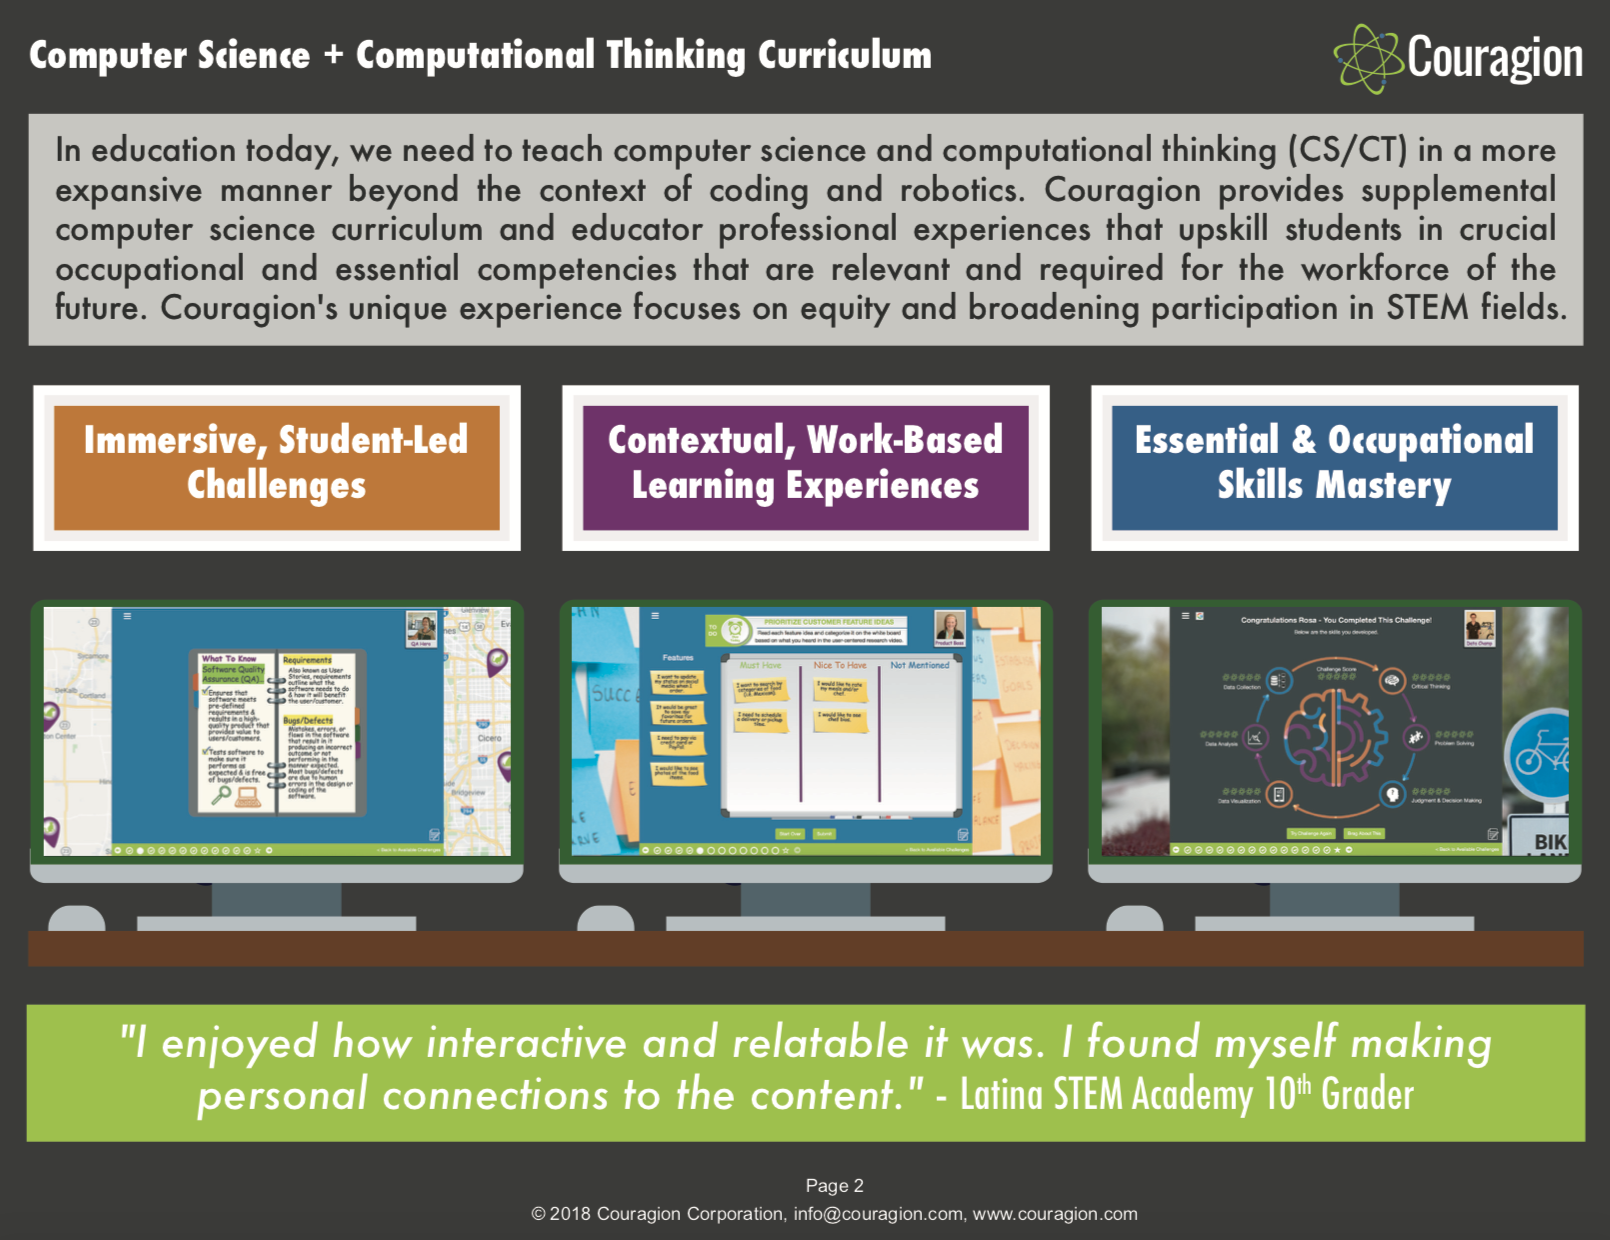 Computational Thinking Curriculum